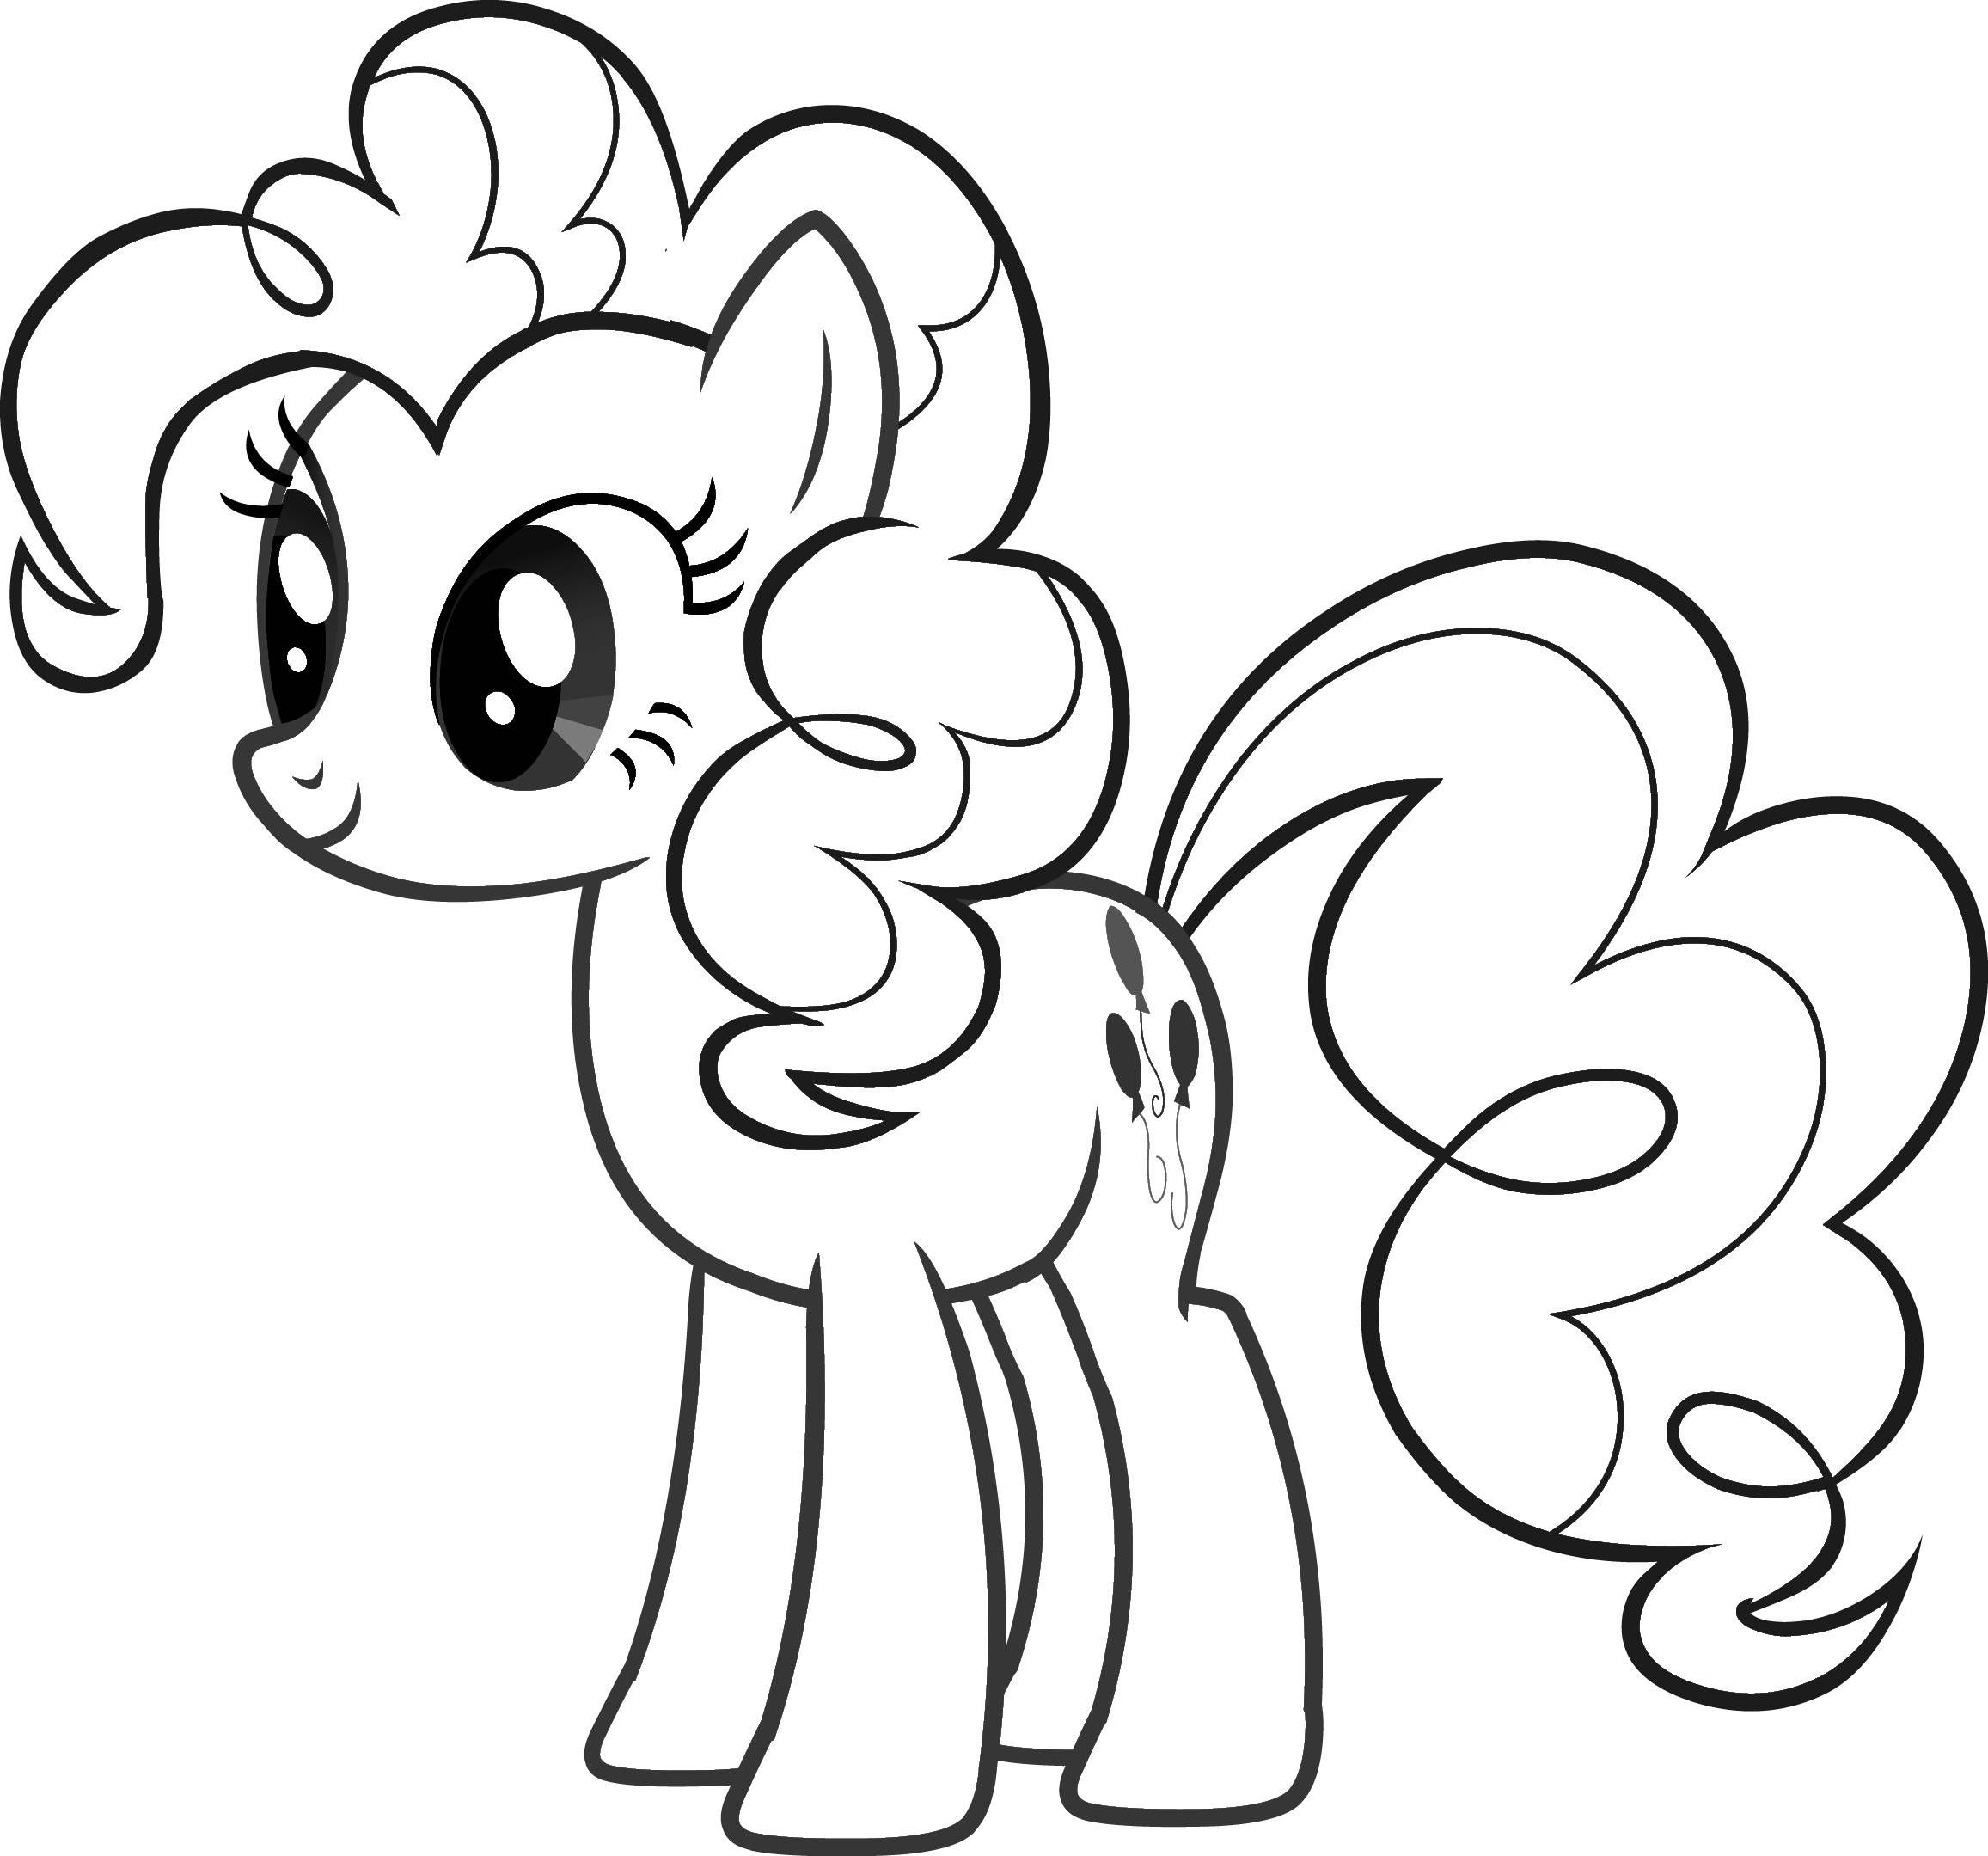 Free Printable My Little Pony Coloring Pages For Kids | Coloring - Free Printable Coloring Pages Of My Little Pony